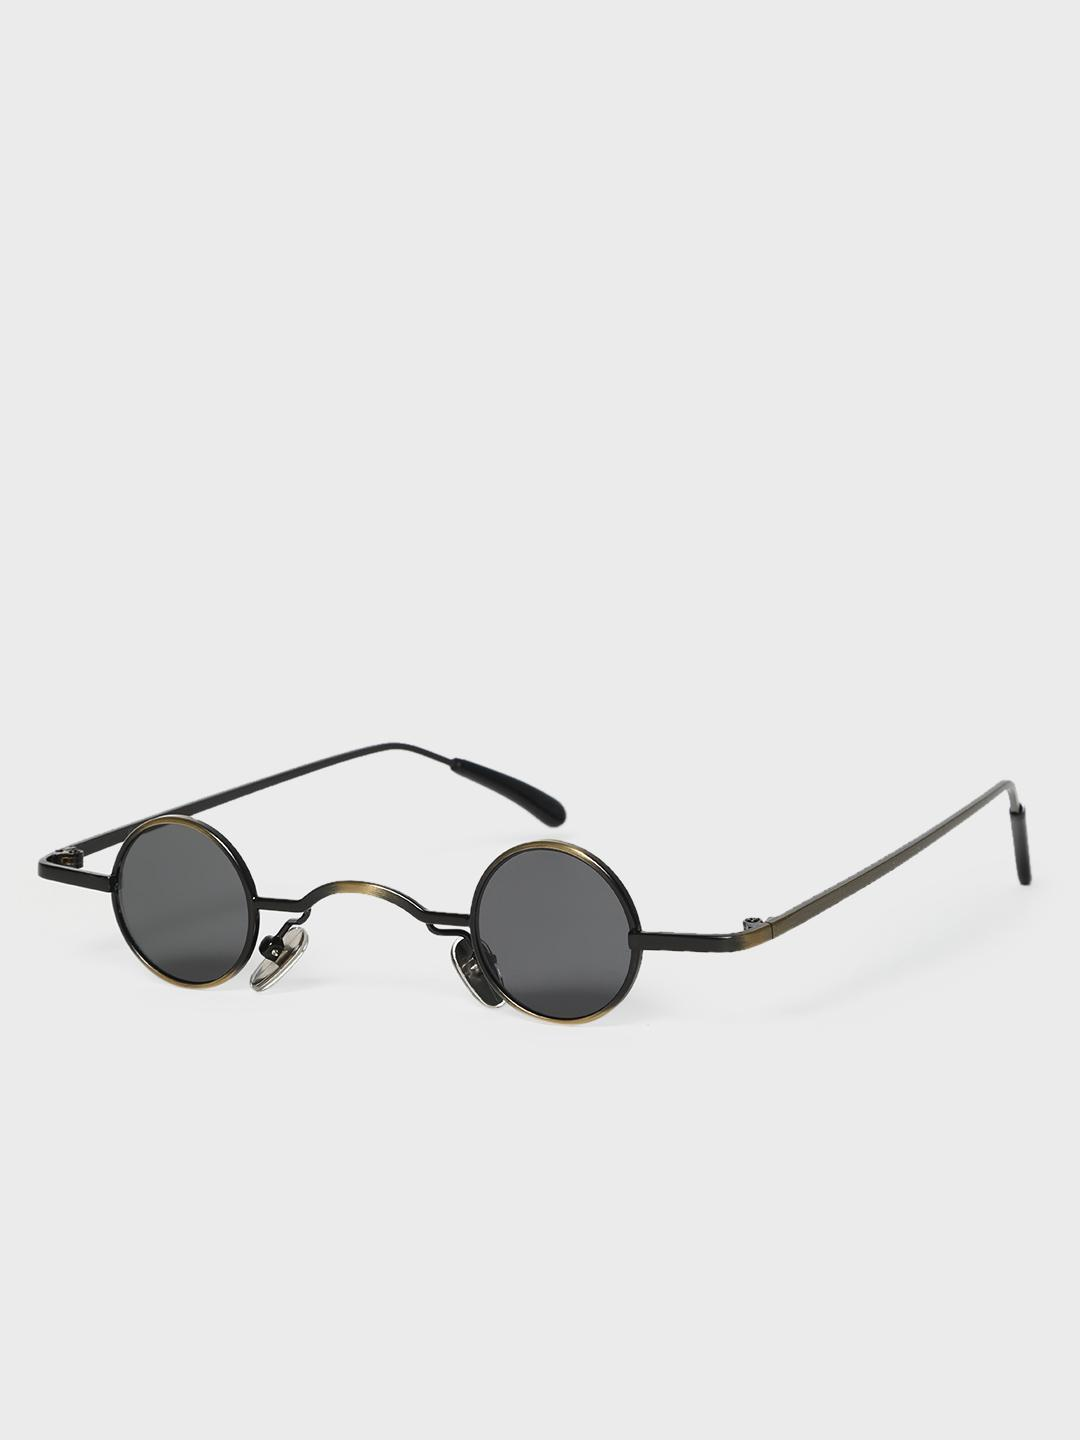 KOOVS Black Metal Bridge Tinted Retro Sunglasses 1